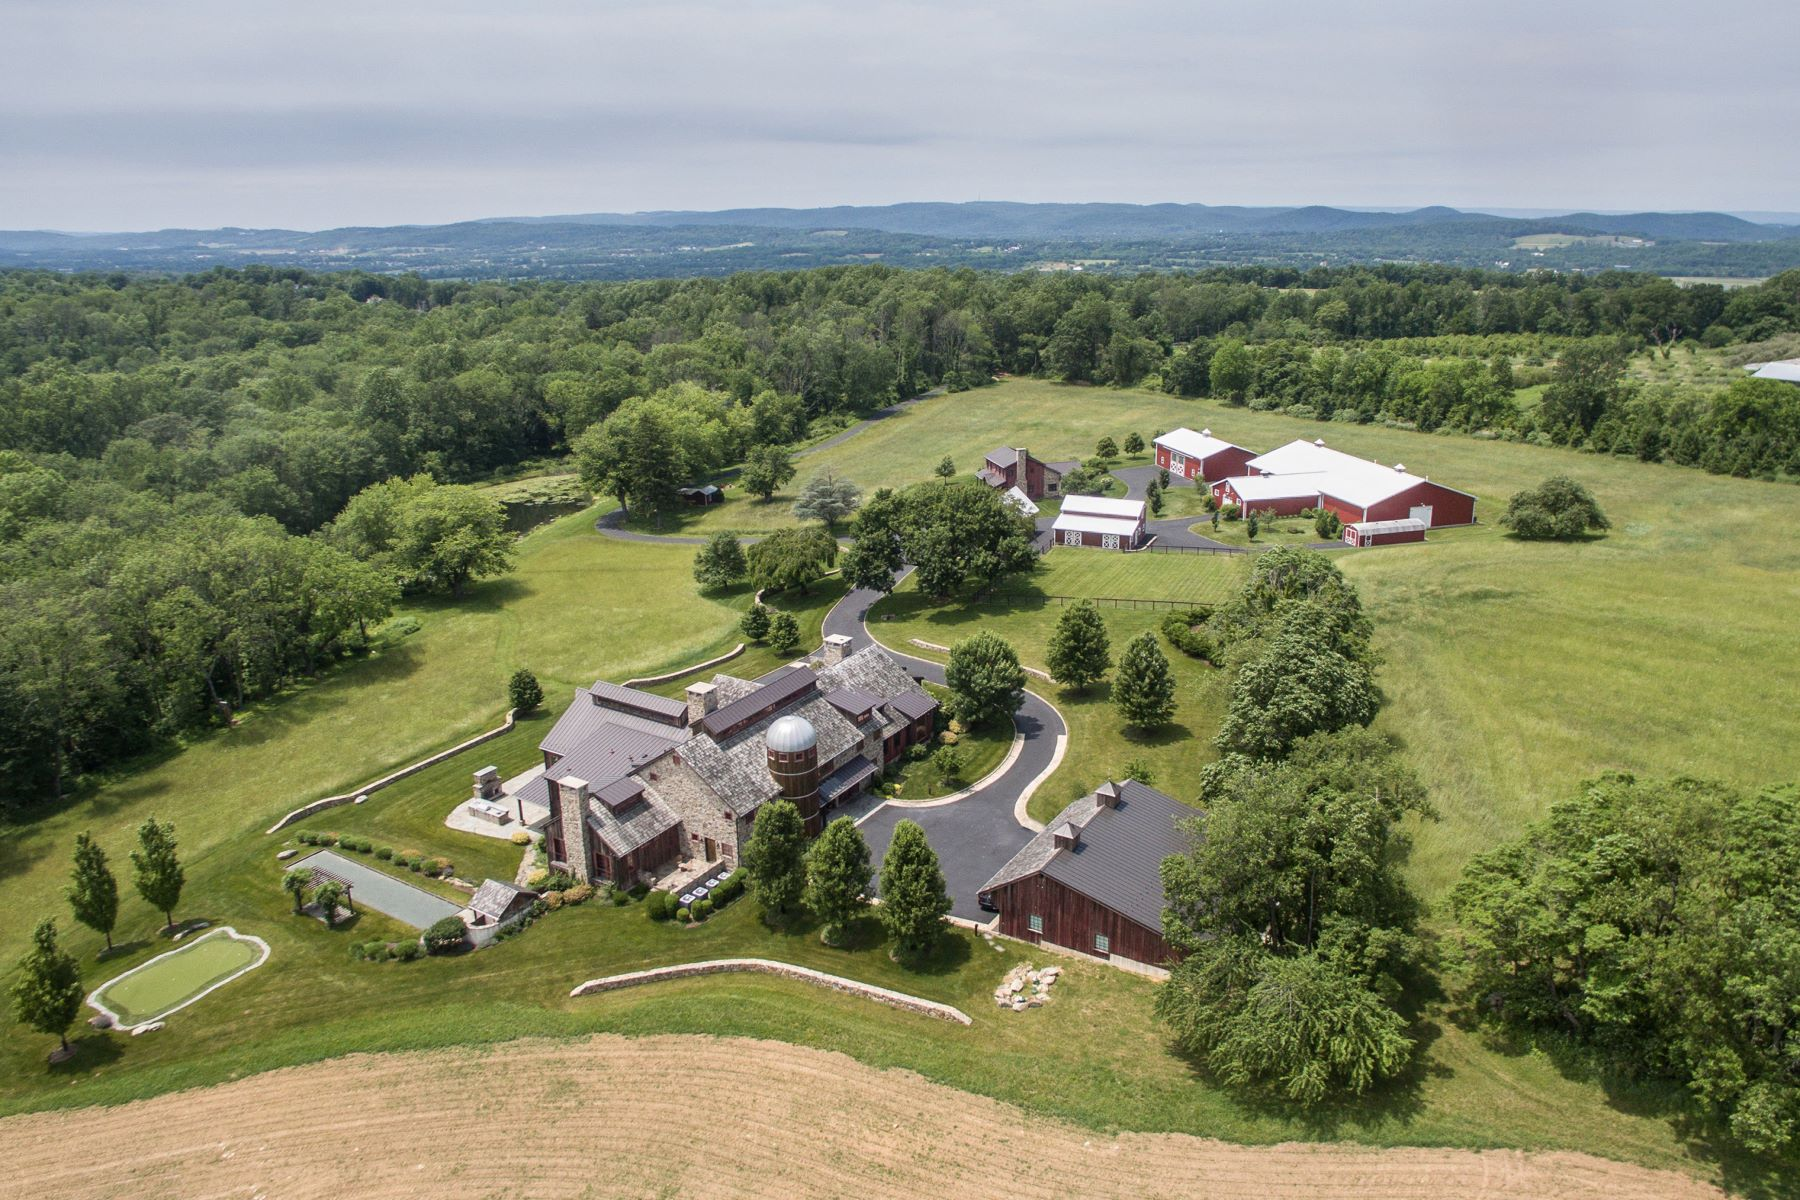 Farm / Ranch / Plantation for Sale at Hidden Estate Property 106 MOUNTAIN TOP RD, Glen Gardner, New Jersey, 08826 United States